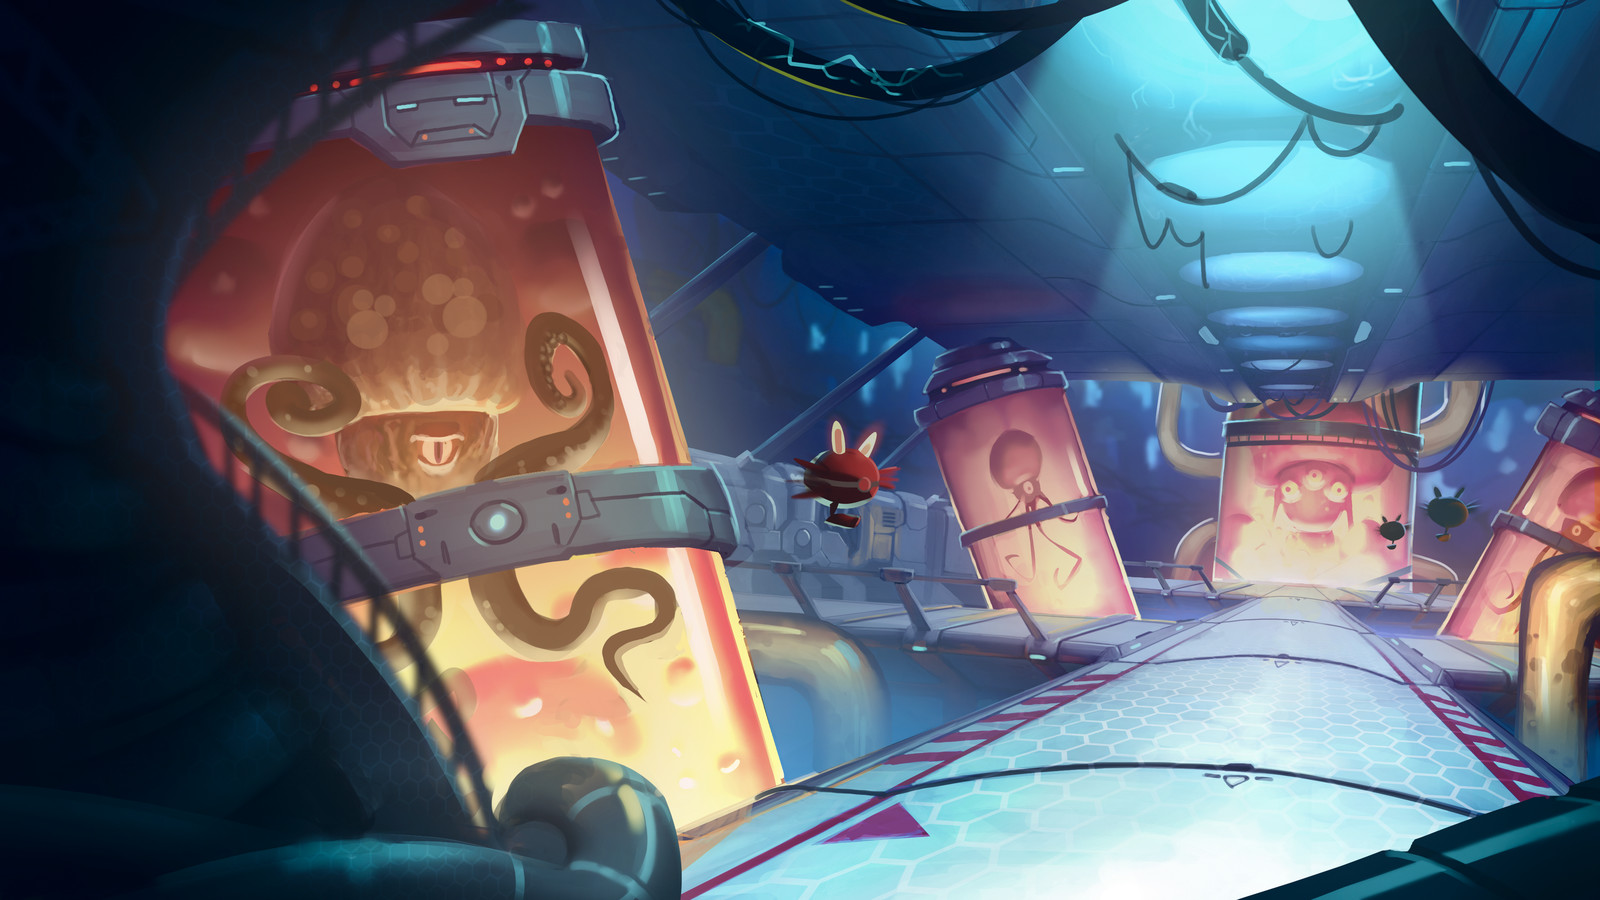 Awesomenauts 'Ai station 404'